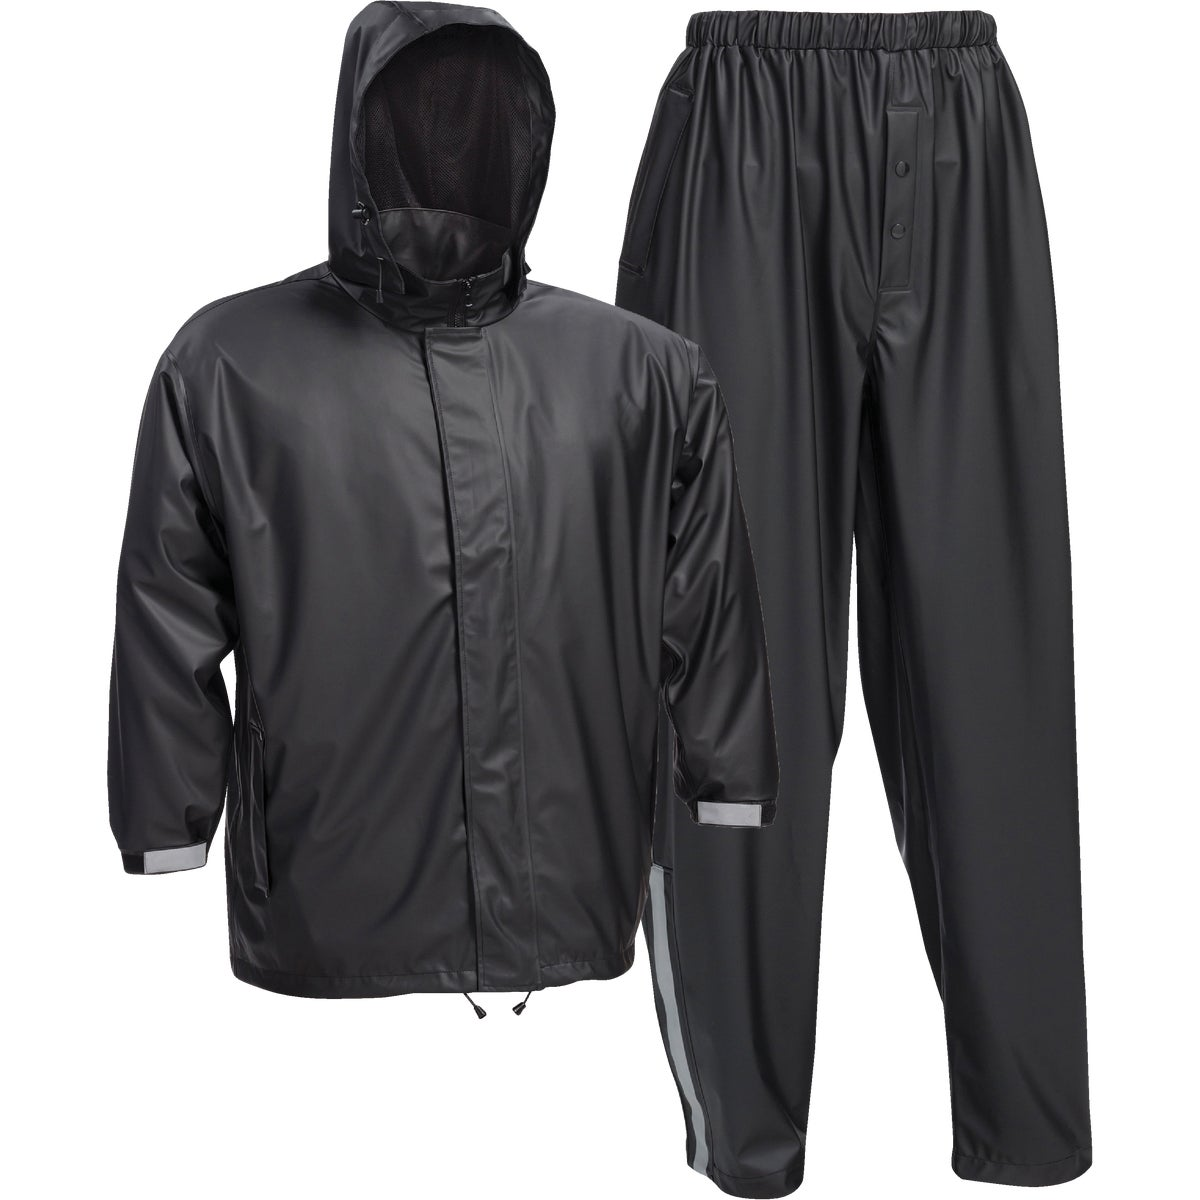 West Chester 3-Piece Black Rain Suit, 44520/M